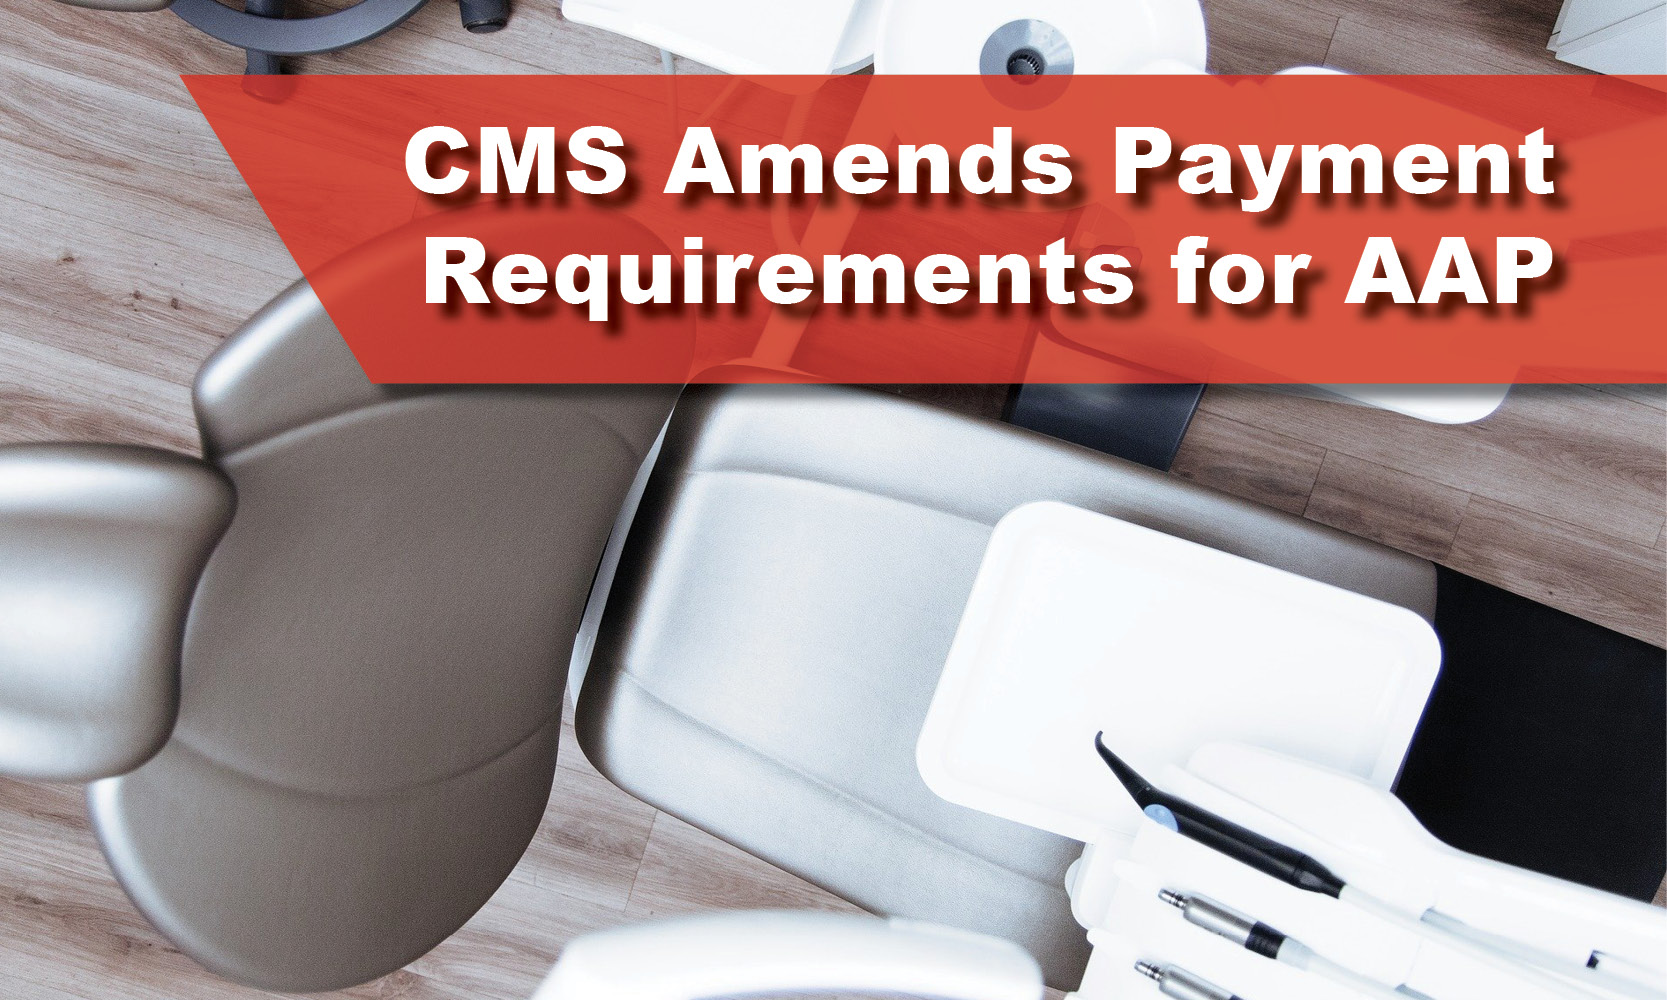 CMS Amends Payment Requirements for AAP